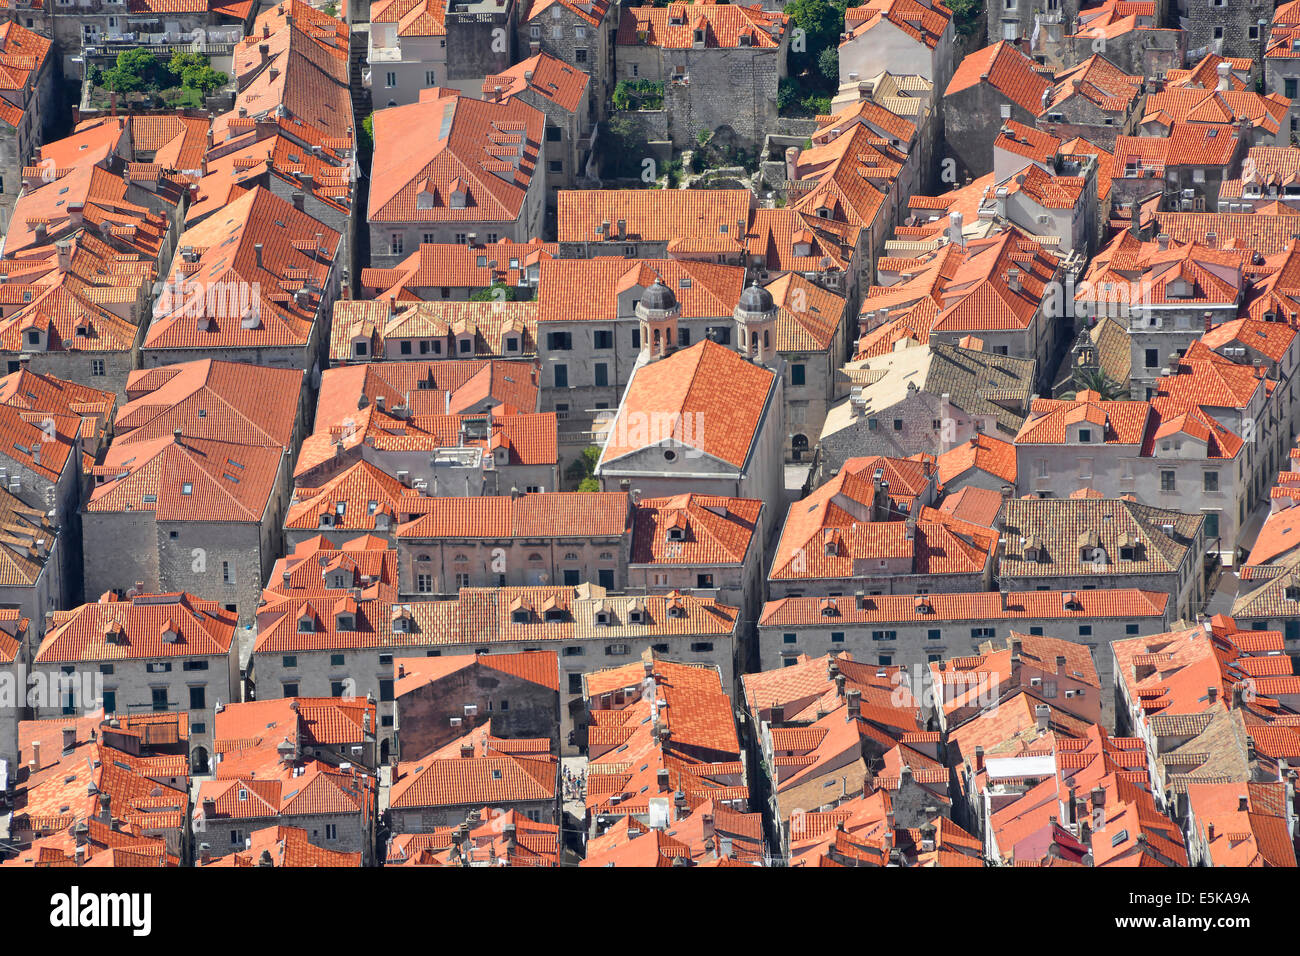 Looking down on rooftops within the walled city of Dubrovnik from Mount Srd - Stock Image